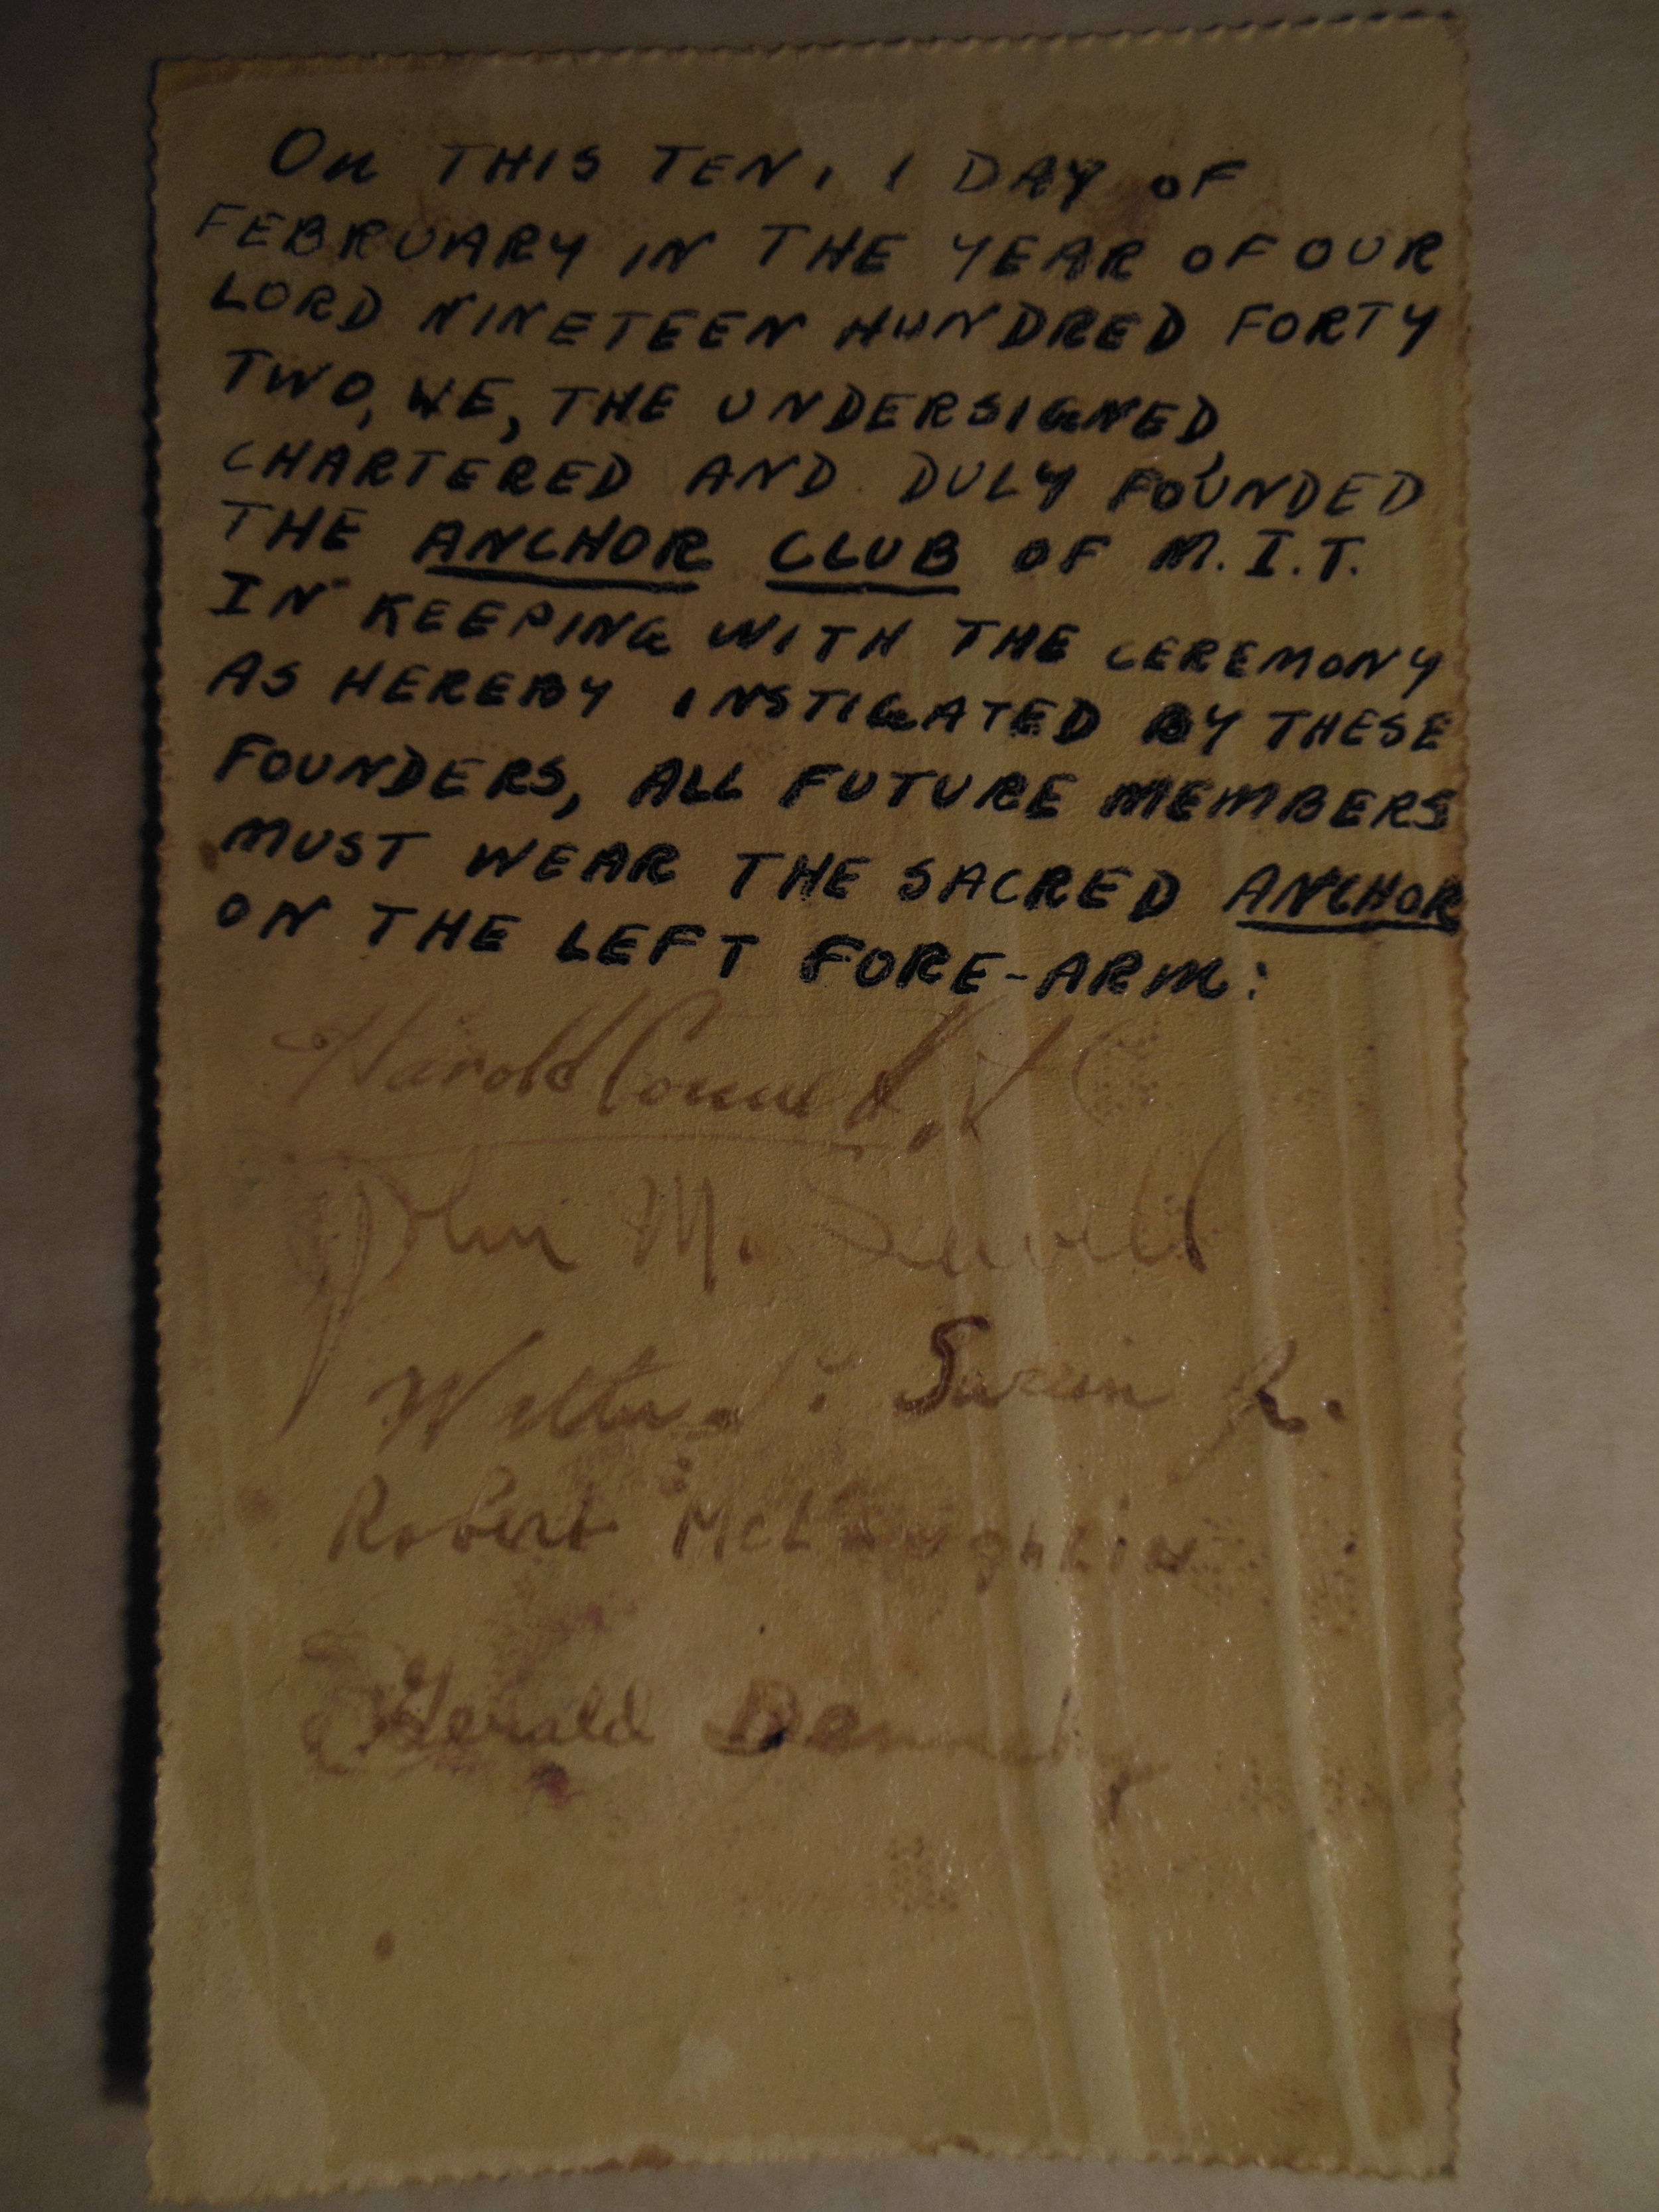 Founding Charter of The Anchor Club. Signed by Harold Connett Feb. 11, 1942.